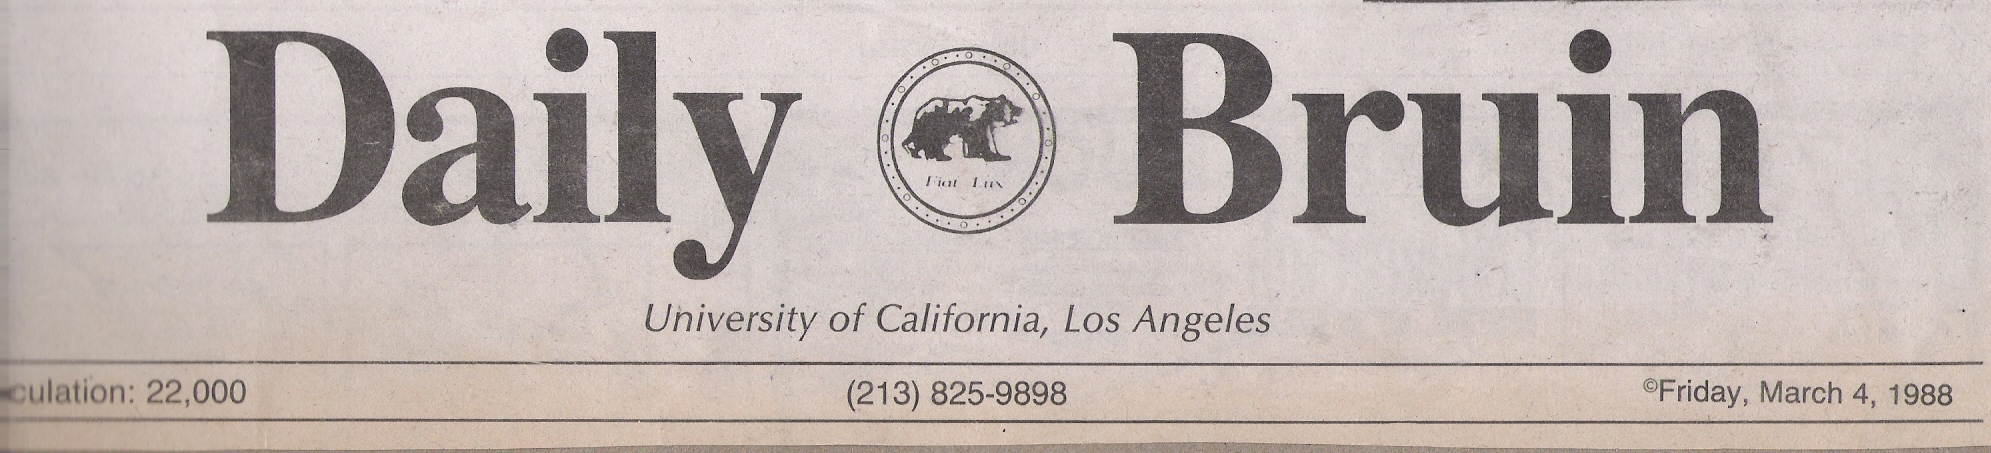 UCLA Daily Bruin March 4, 1988